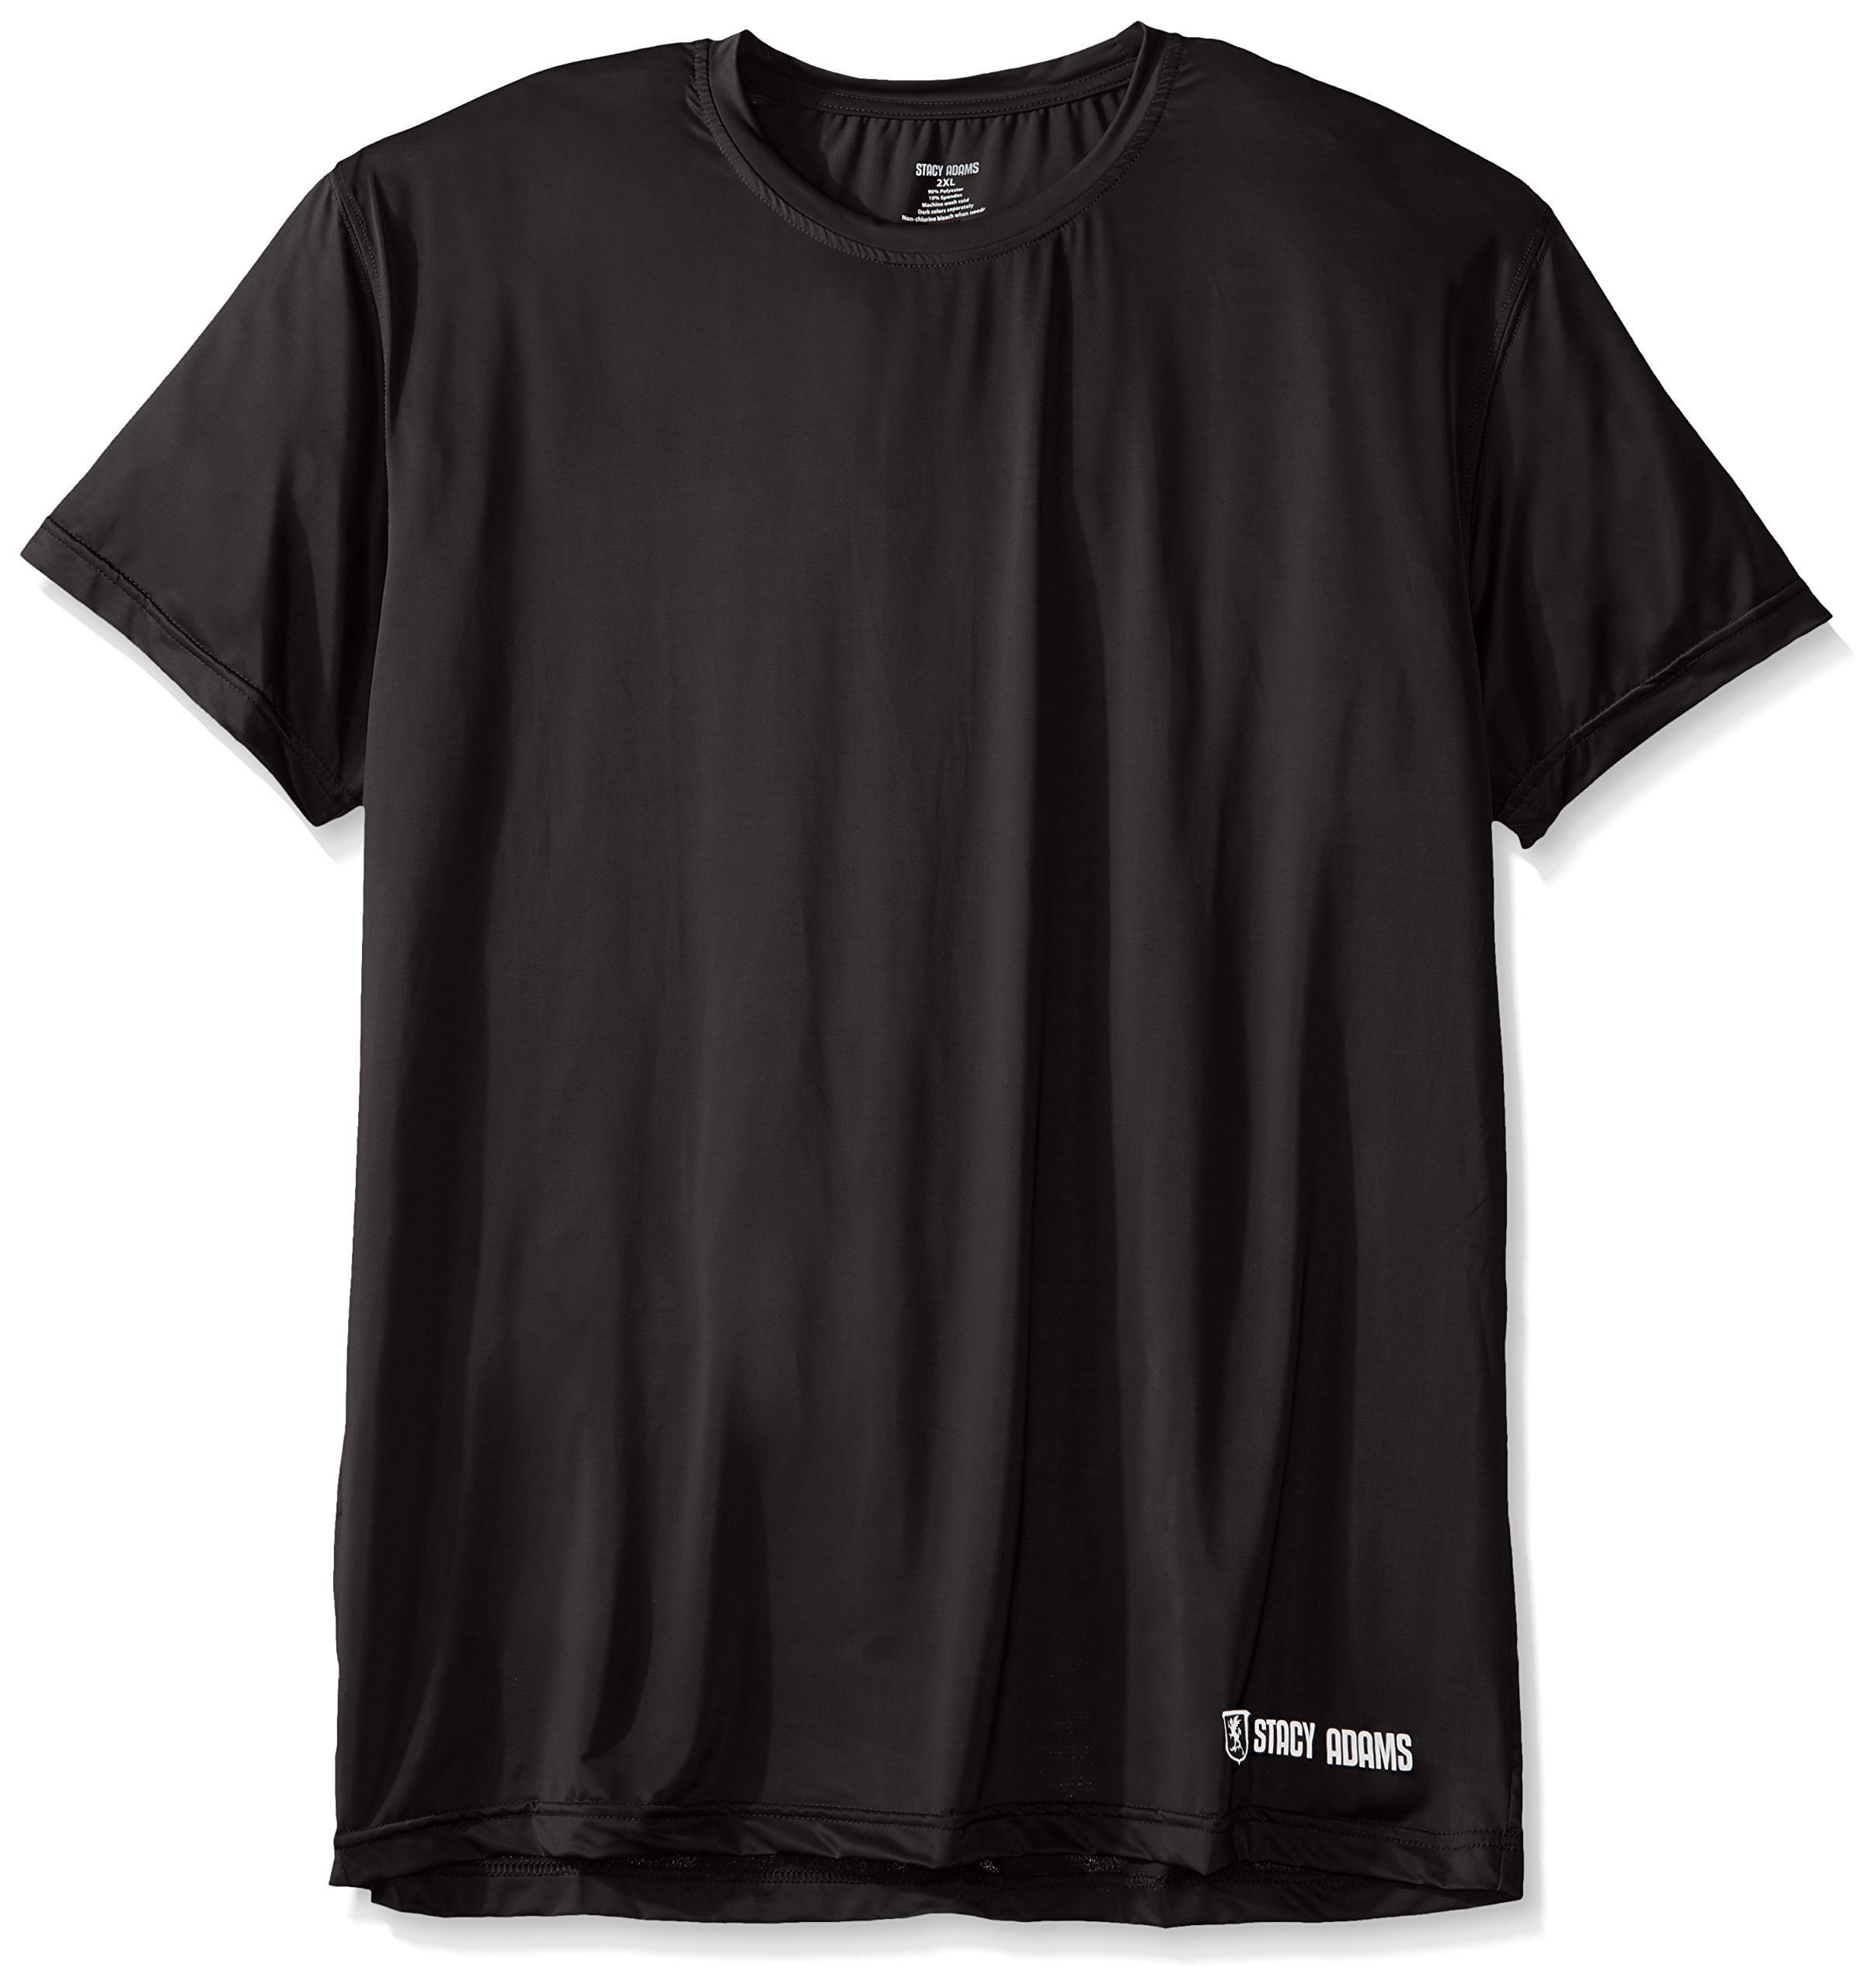 Stacy Adams Men's Big and Tall Crew Neck Tee, Black, 4X-Large by Stacy Adams